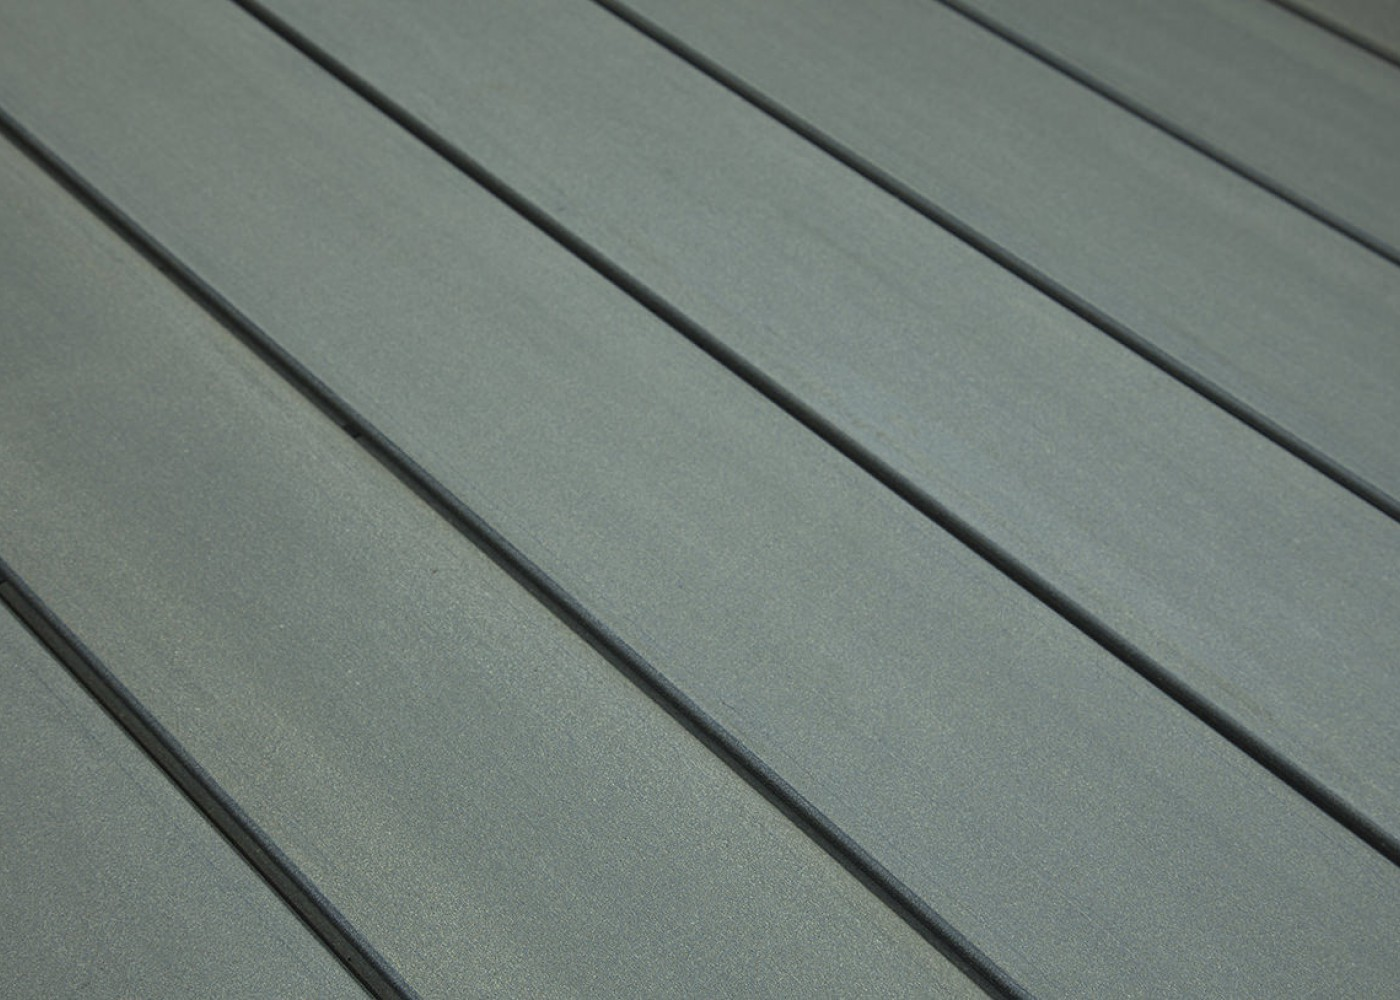 Terrasse composite Elégance fixation invisible Gris Anthracite rainuré 23x138x4000